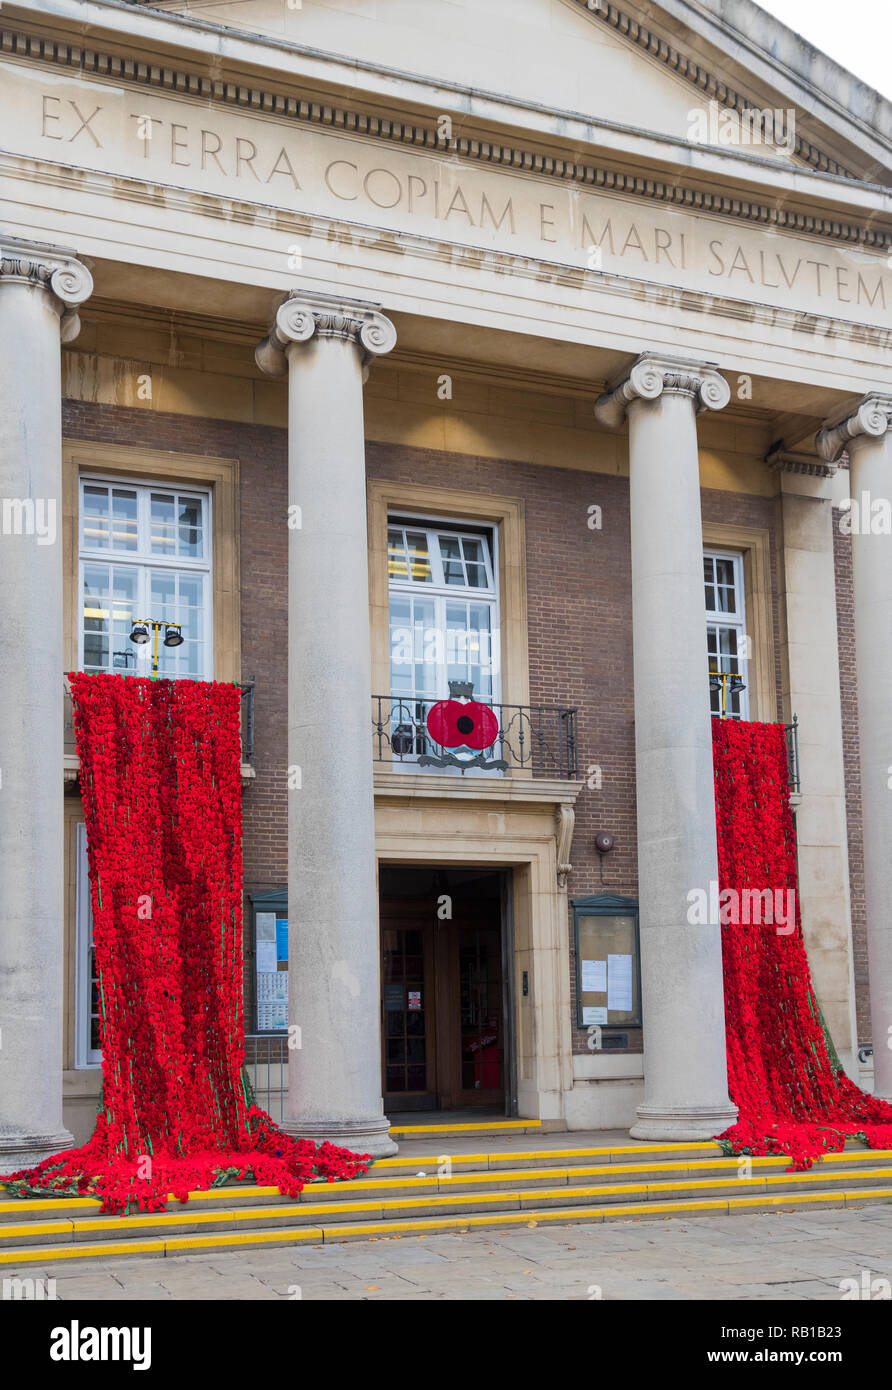 Display of poppies draped over balconies outside Worthing Town Hall for Remembrance Day 2018 in Worthing, West Sussex, England, UK. - Stock Image